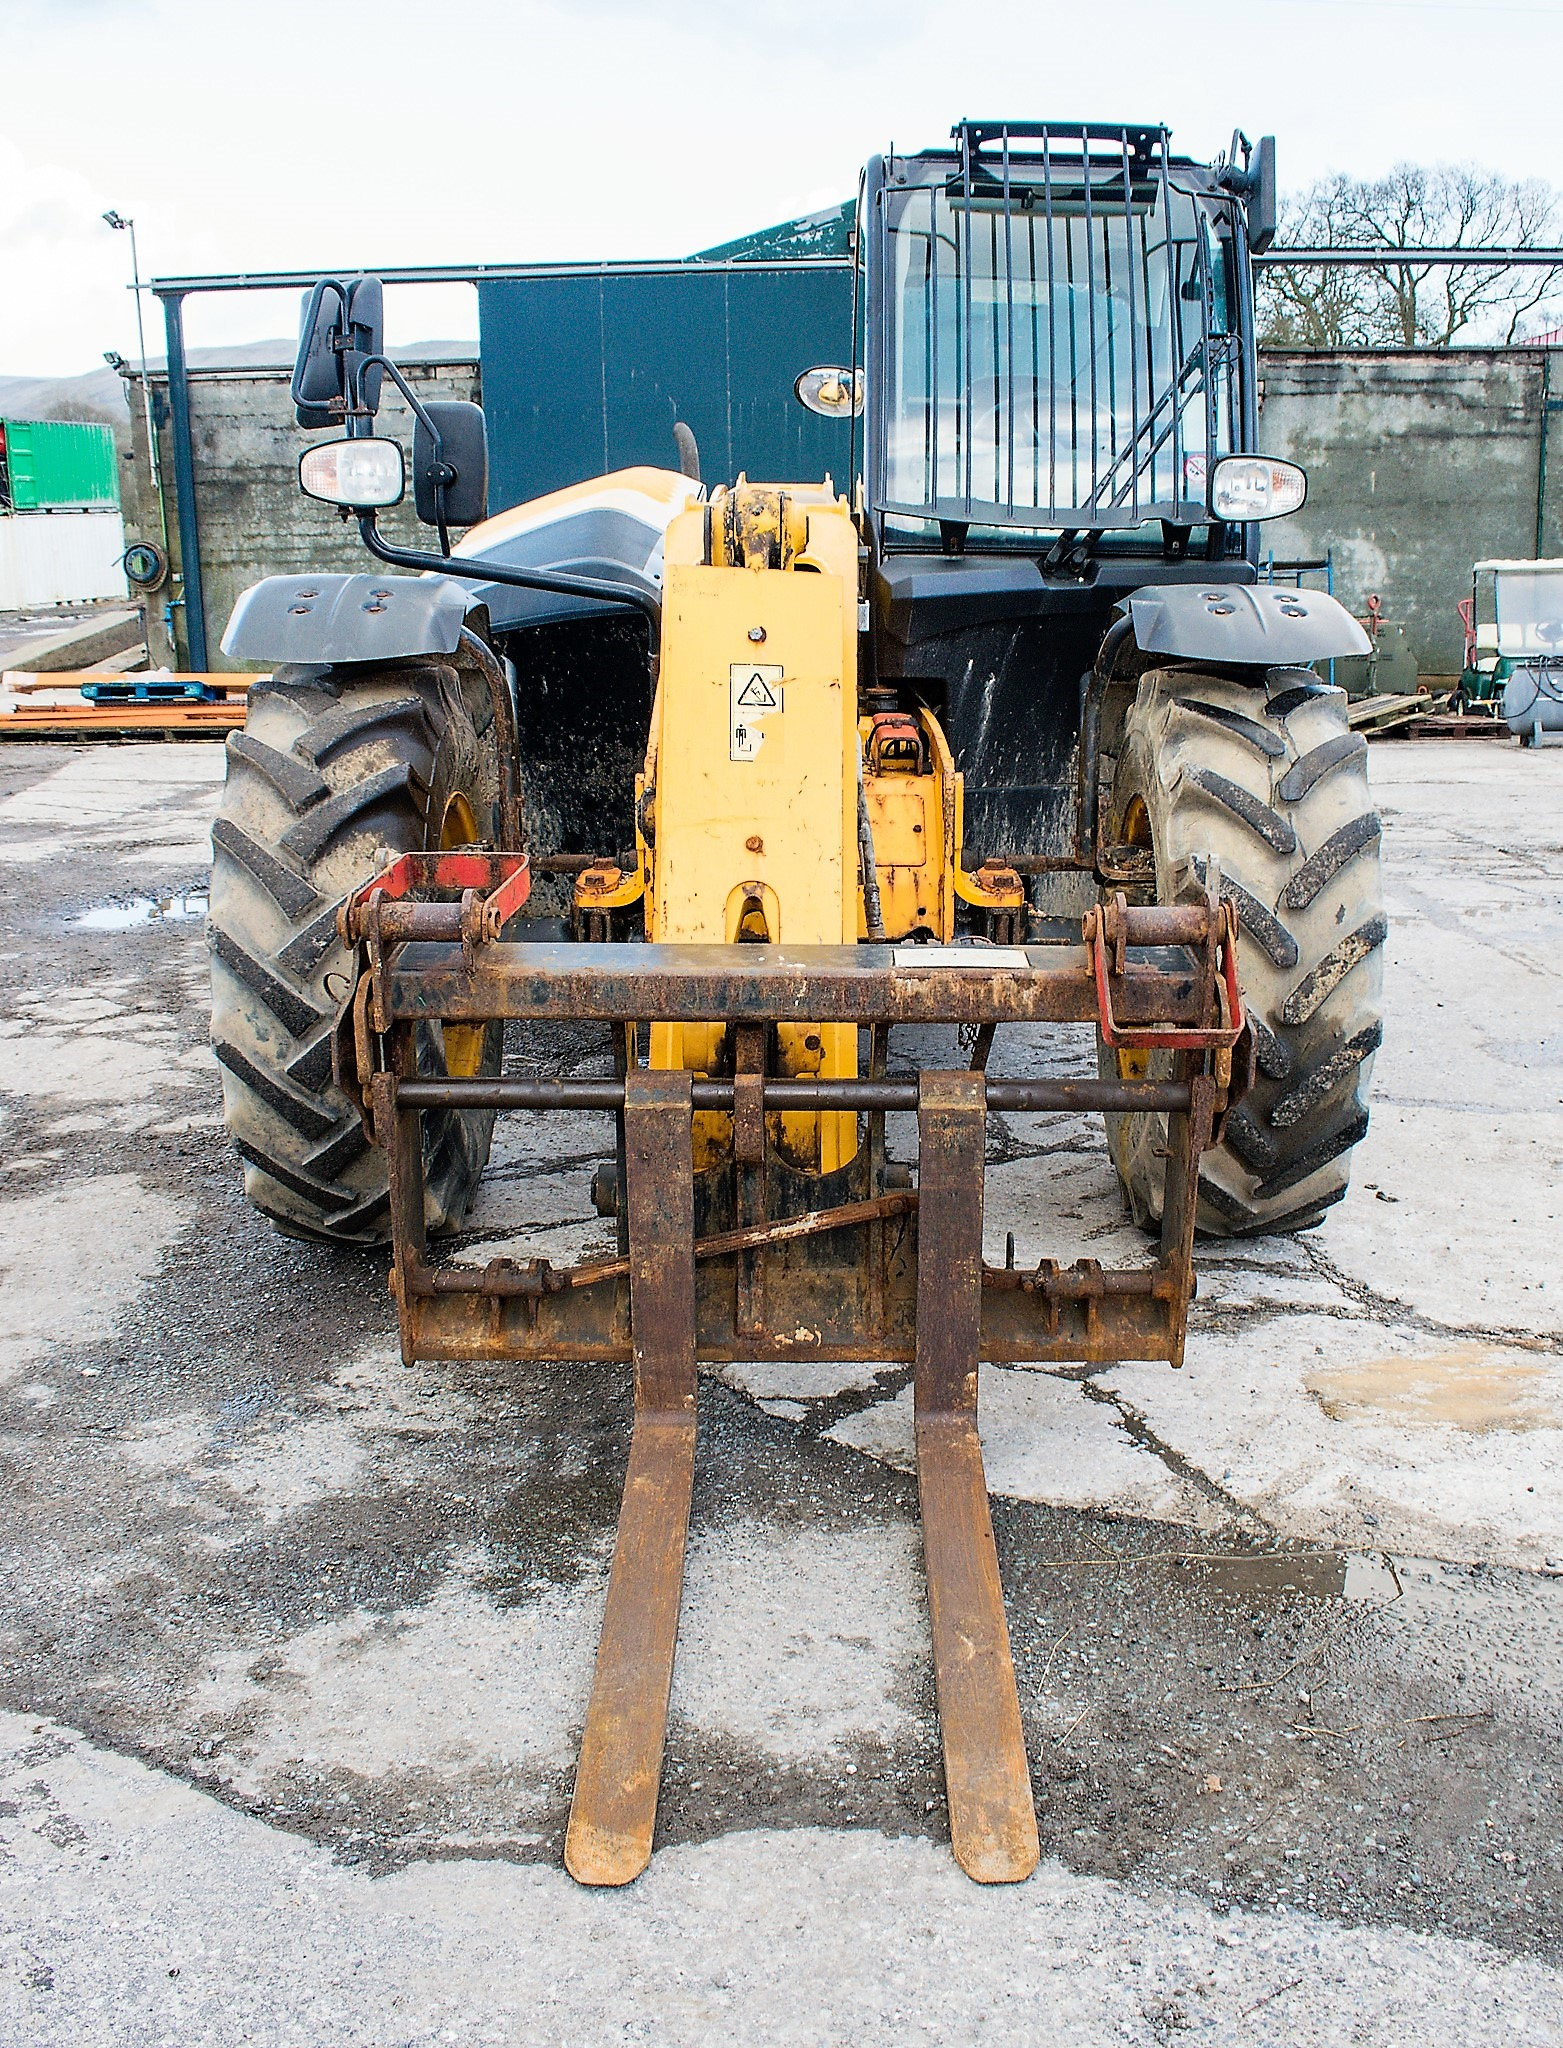 JCB 531-70 7 metre telescopic handler Year: 2013 S/N: 2176575 Reg No: MX13 PHY Recorded Hours: - Image 5 of 19